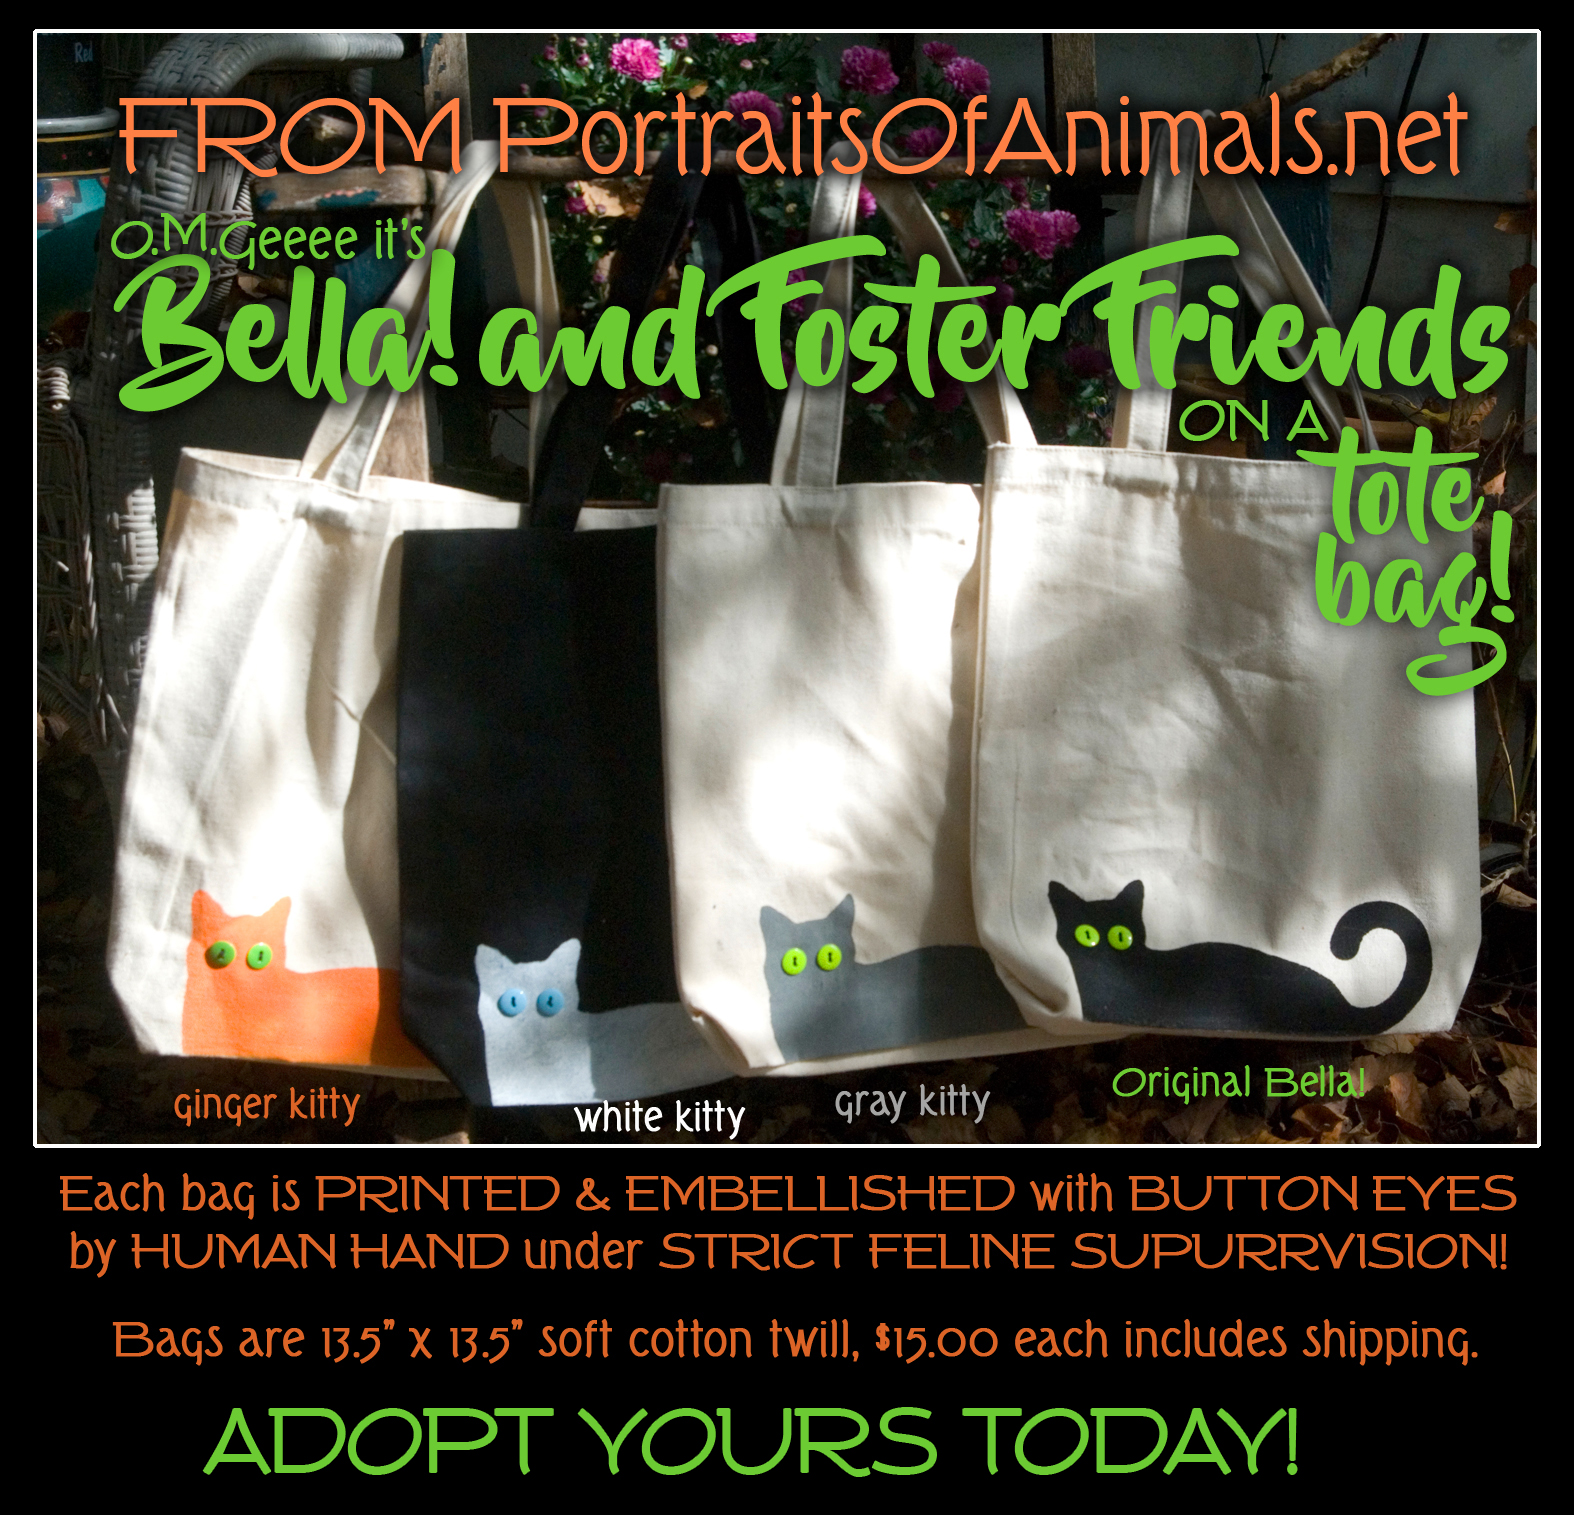 Bella and Her Foster Friends Tote Bags!